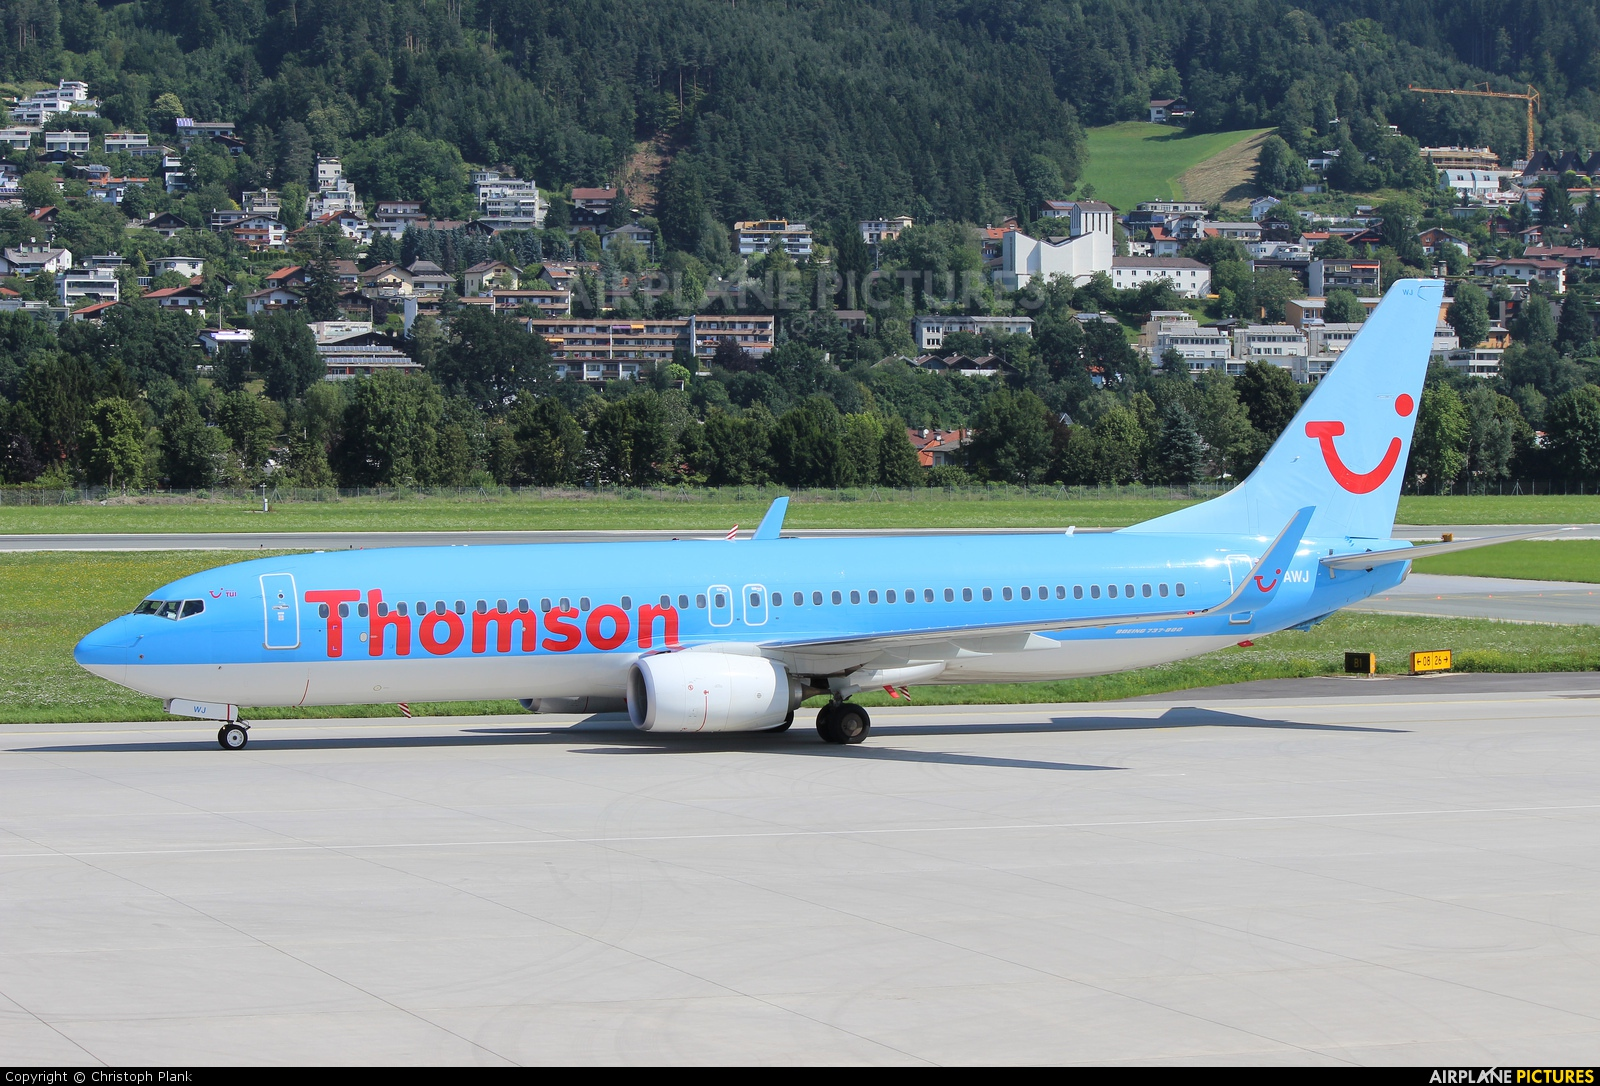 Thomson/Thomsonfly G-TAWJ aircraft at Innsbruck